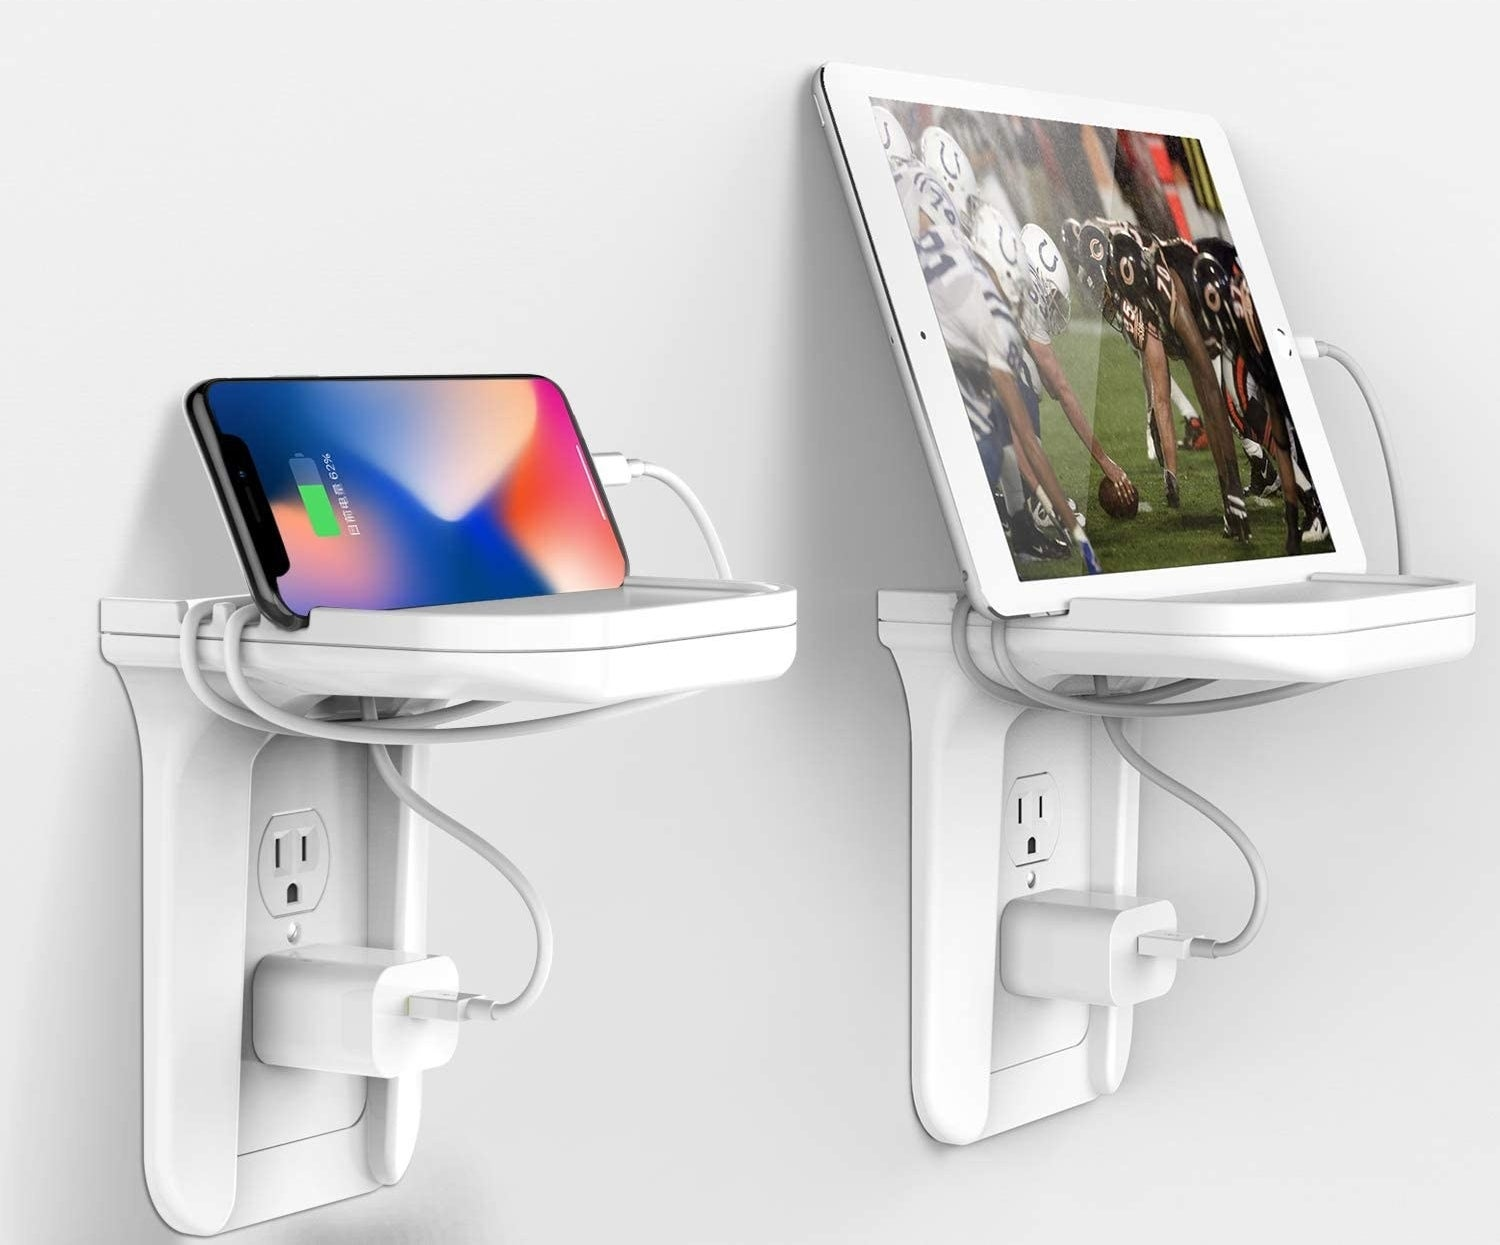 A phone and a tablet sitting on shelves above two electrical outlets.